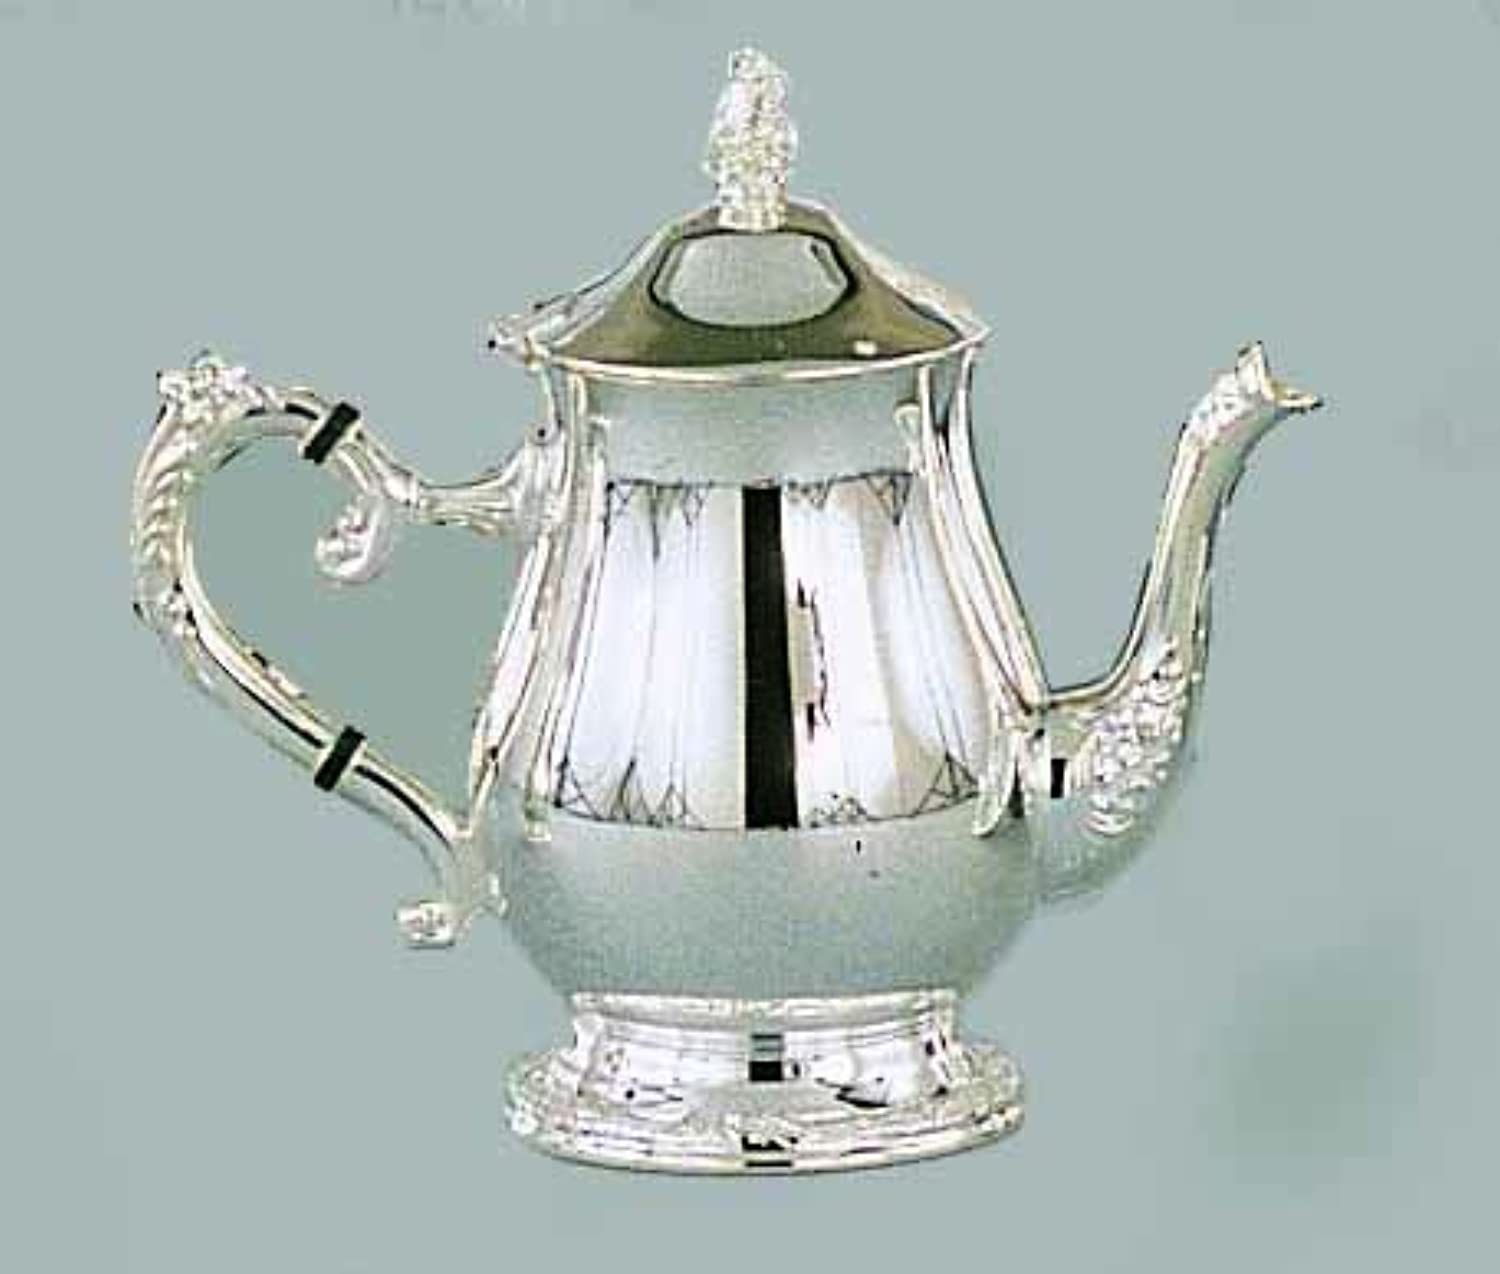 Elegance Silver 89808 Romantica Collection Silver Plated Tea Pot, 32 oz.